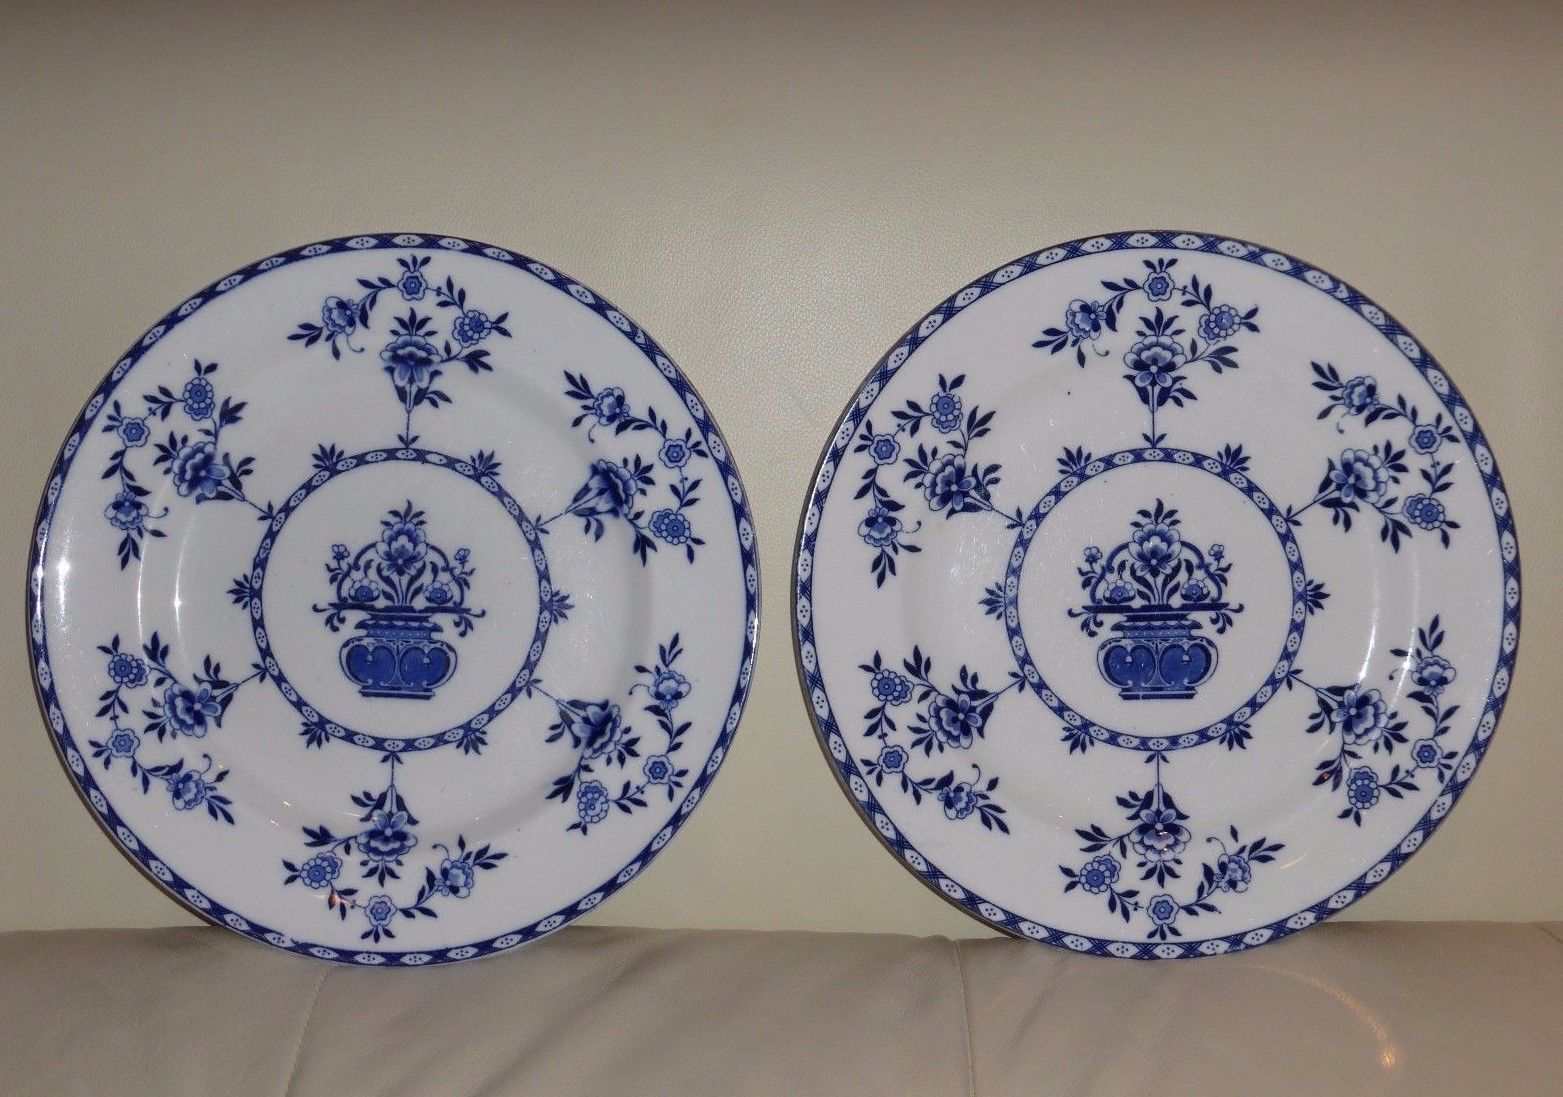 2 ANTIQUE ROYAL DOULTON BLUE WHITE FLOWERS DINNER PLATES (1902-1922 MARK) & 2 Antique Royal Doulton Blue White Flowers and 9 similar items